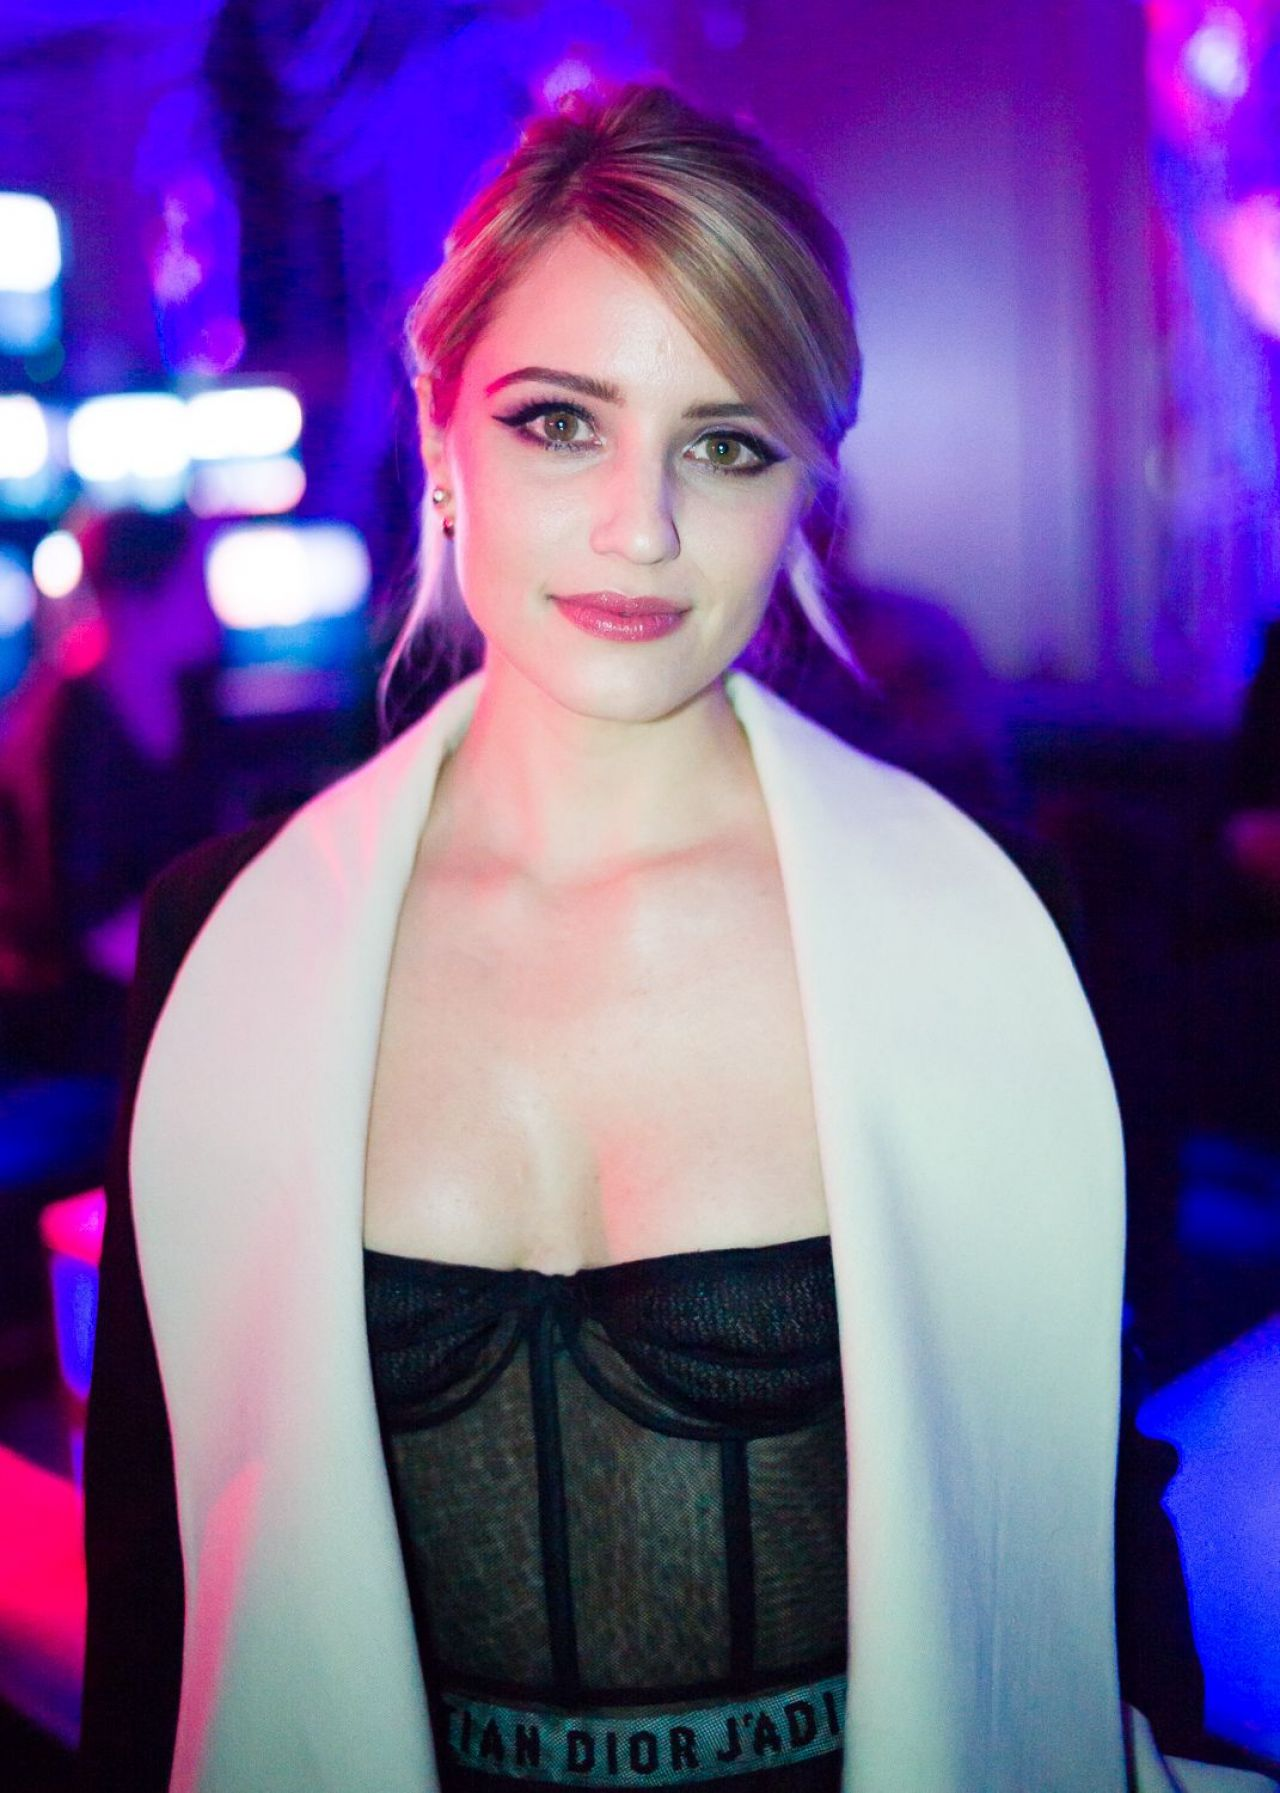 dianna agron 2017 - photo #17